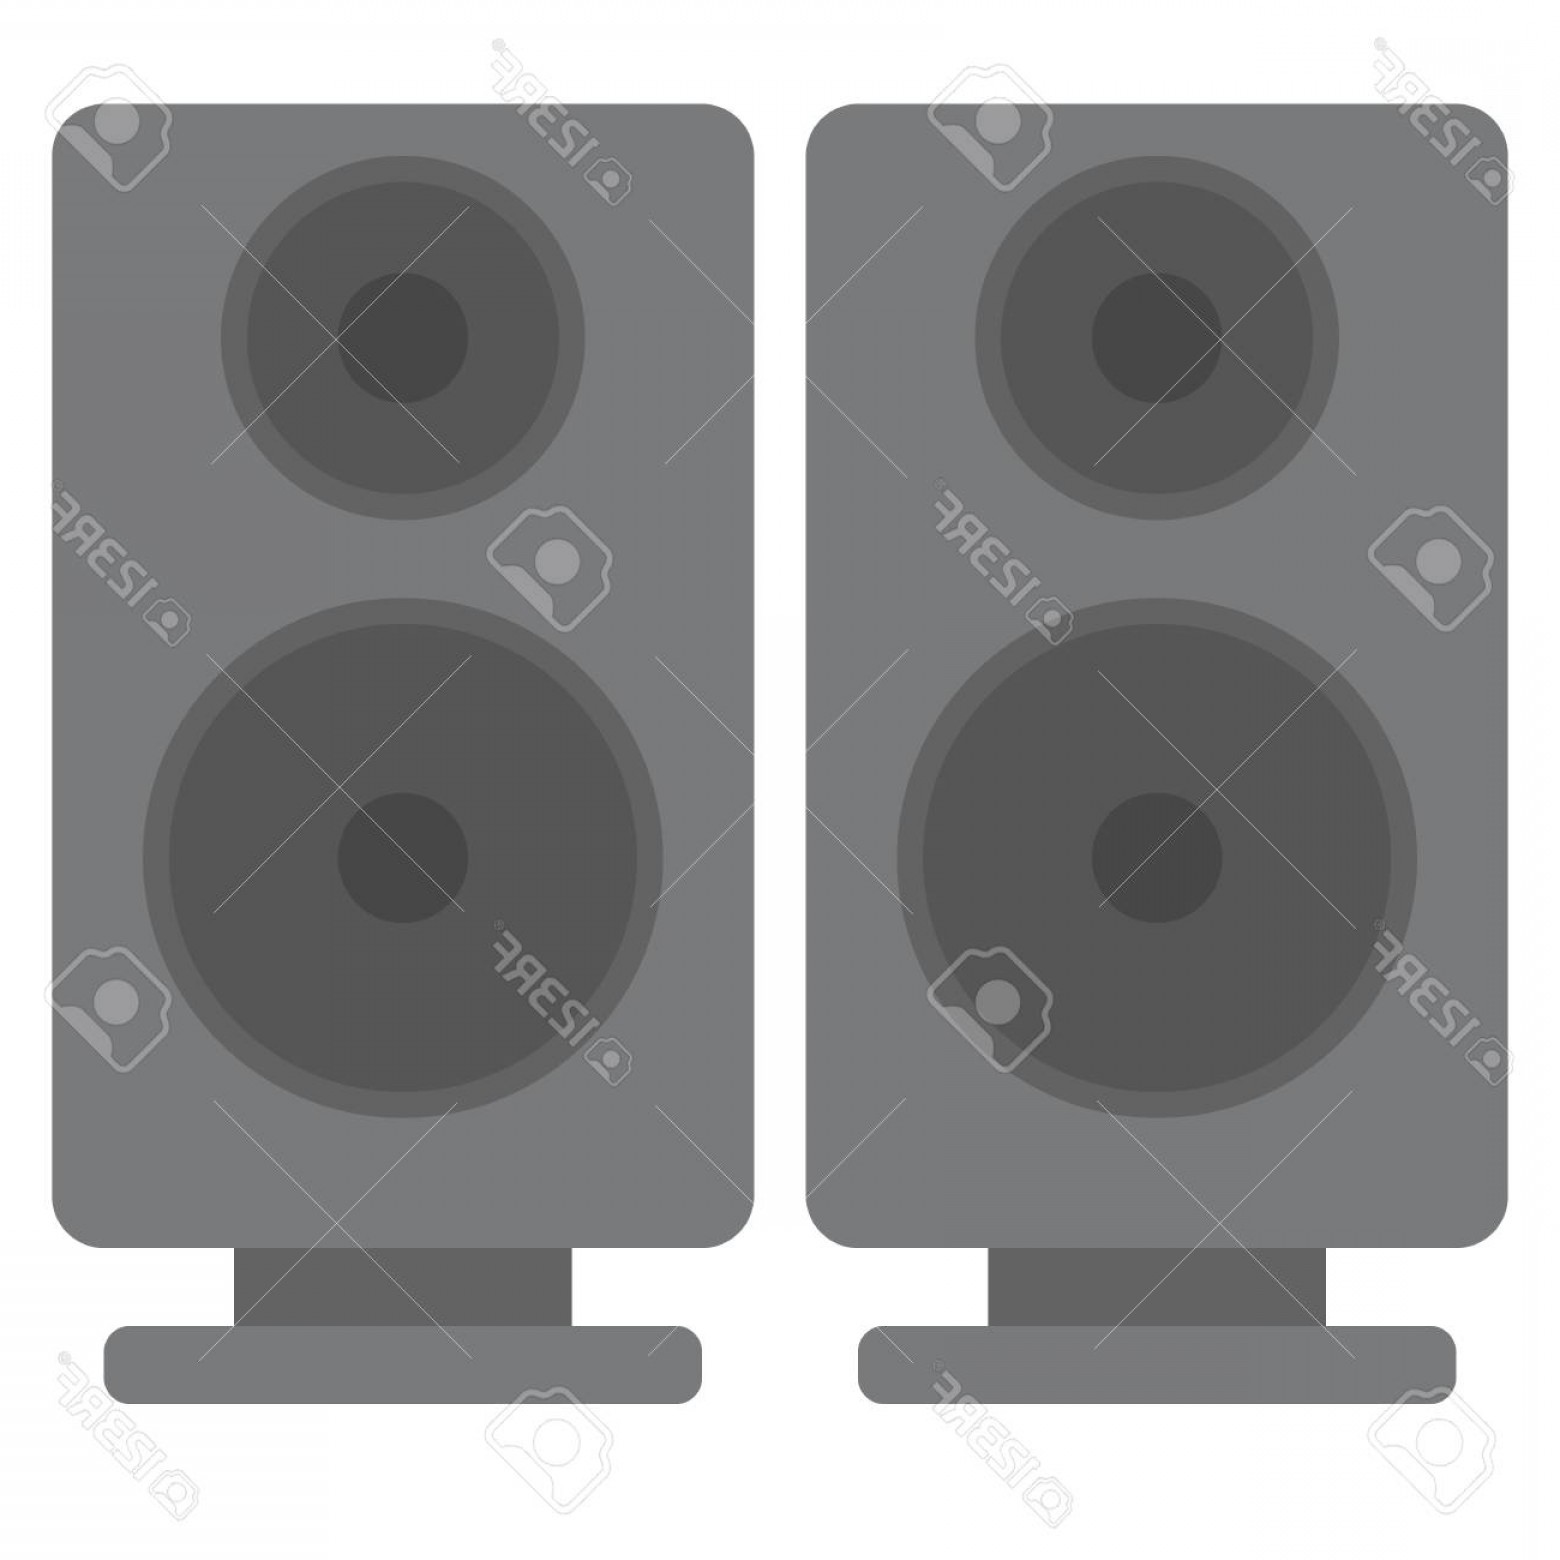 Speakers Vector Black: Photostock Vector Black Acoustic Sound Speakers Vector Illustration Flat Style Design Colorful Graphics